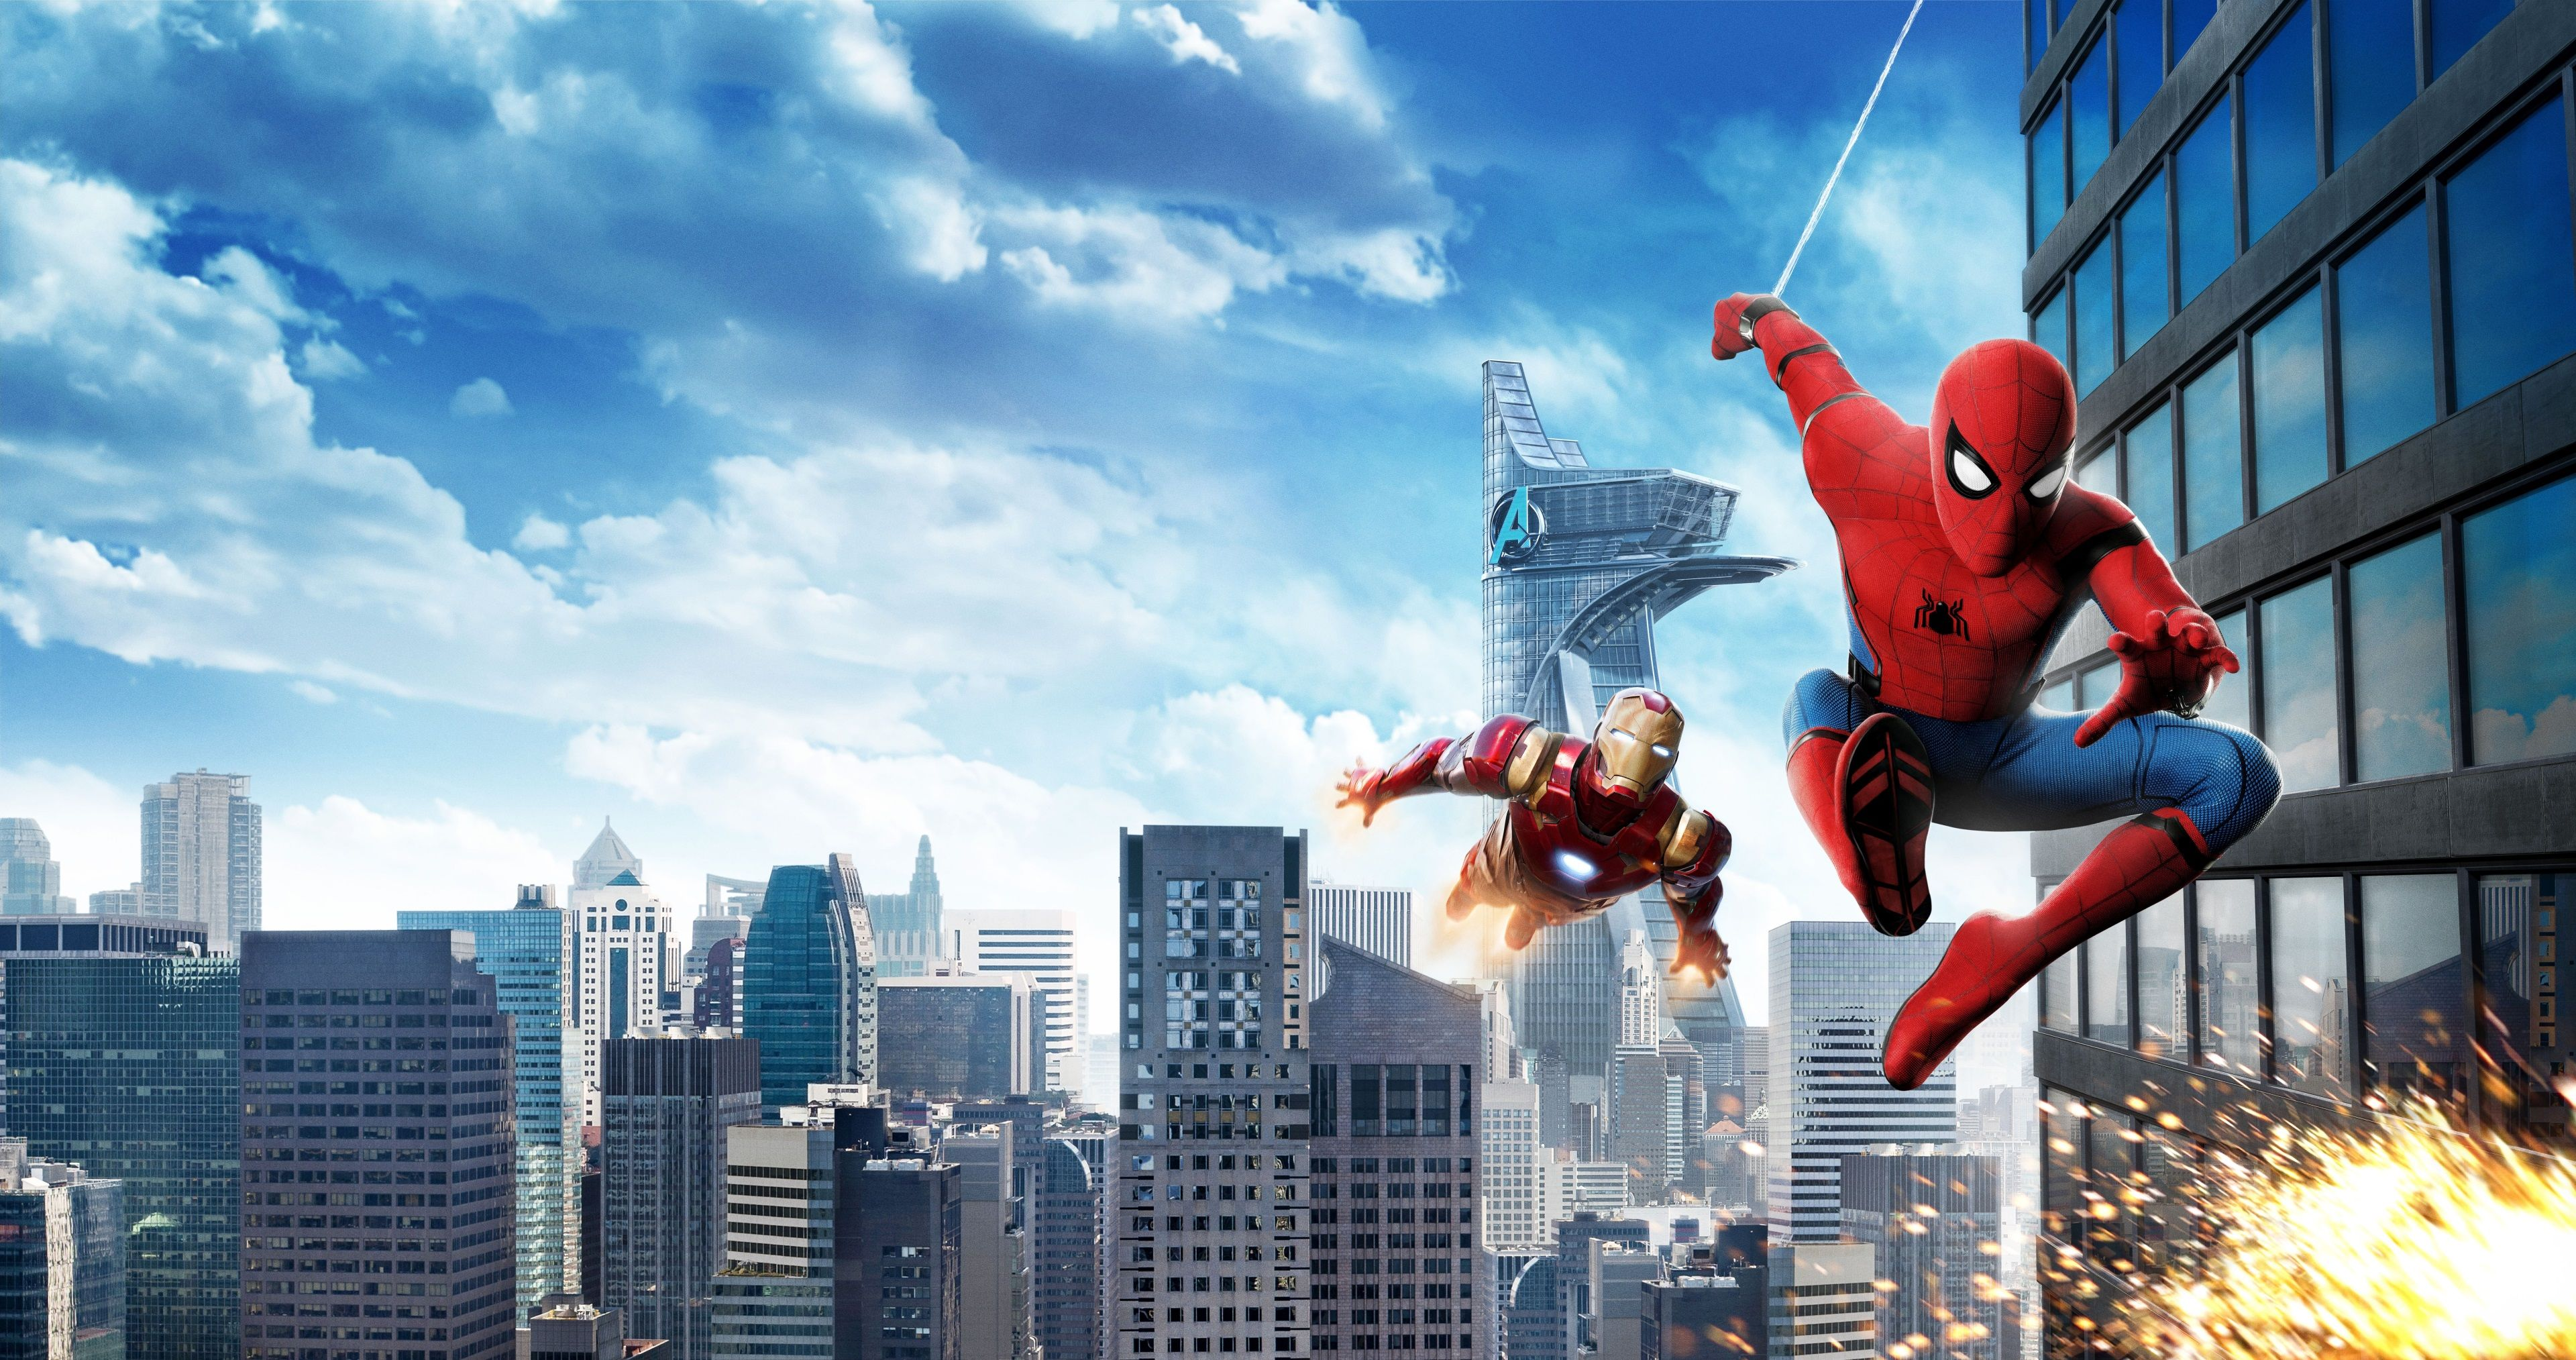 3840x2027 Spider Man Homecoming 4k Best Picture Ever Avengers Wallpaper Marvel Wallpaper Best Pictures Ever